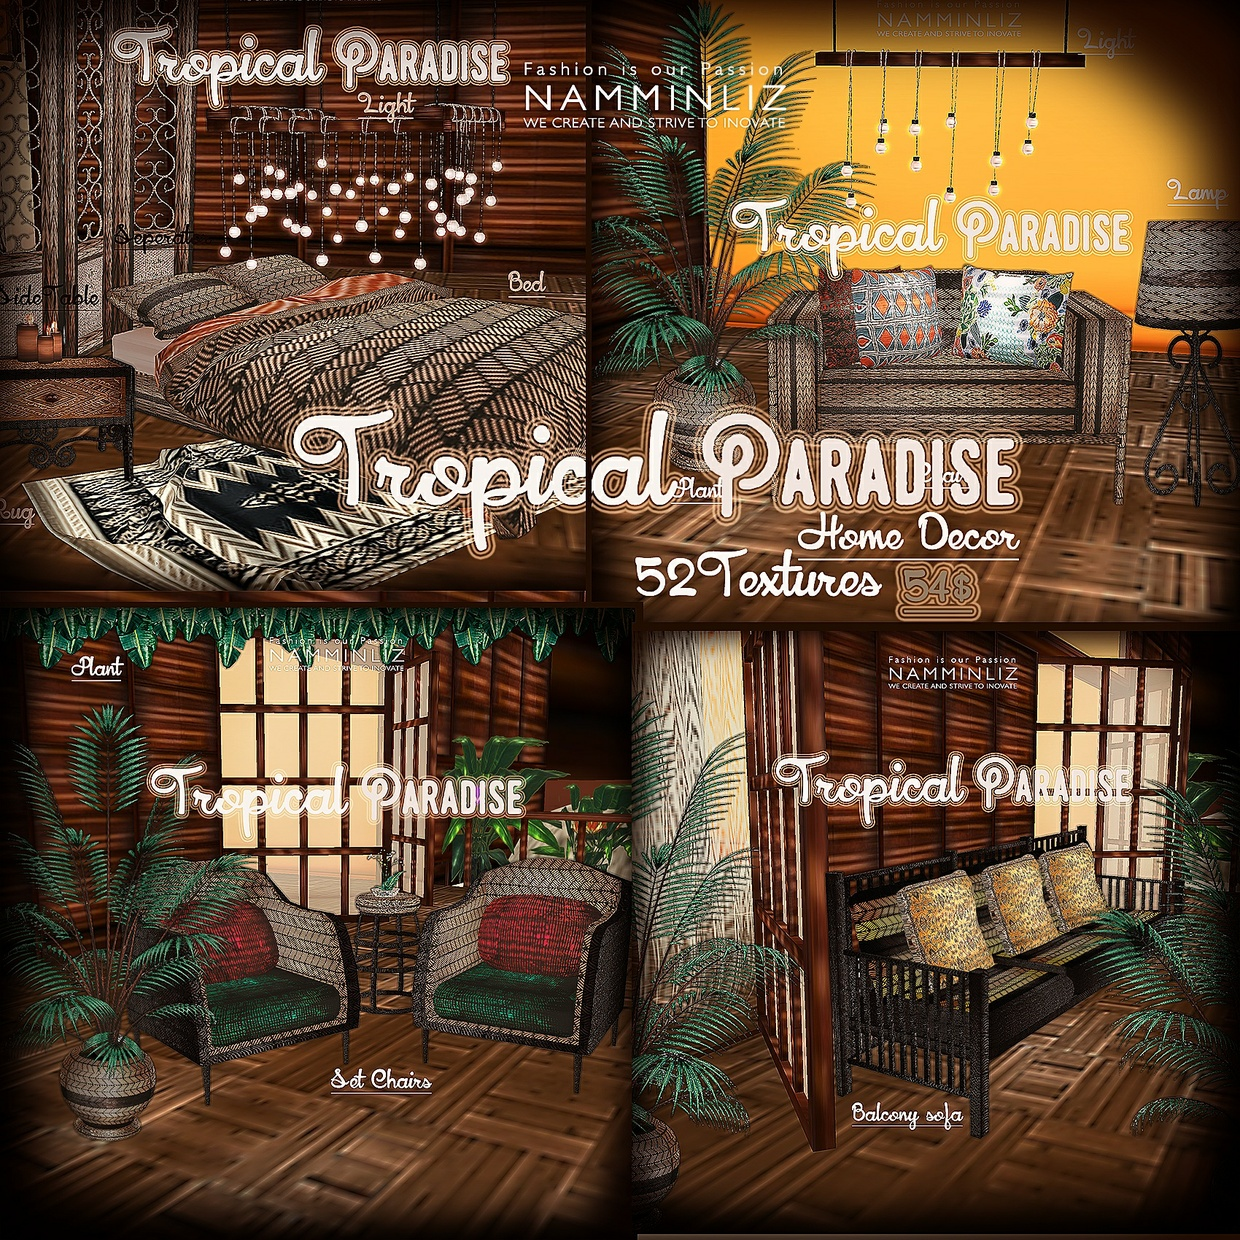 Tropical Paradise Home Decor 52 Textures Limited To 4